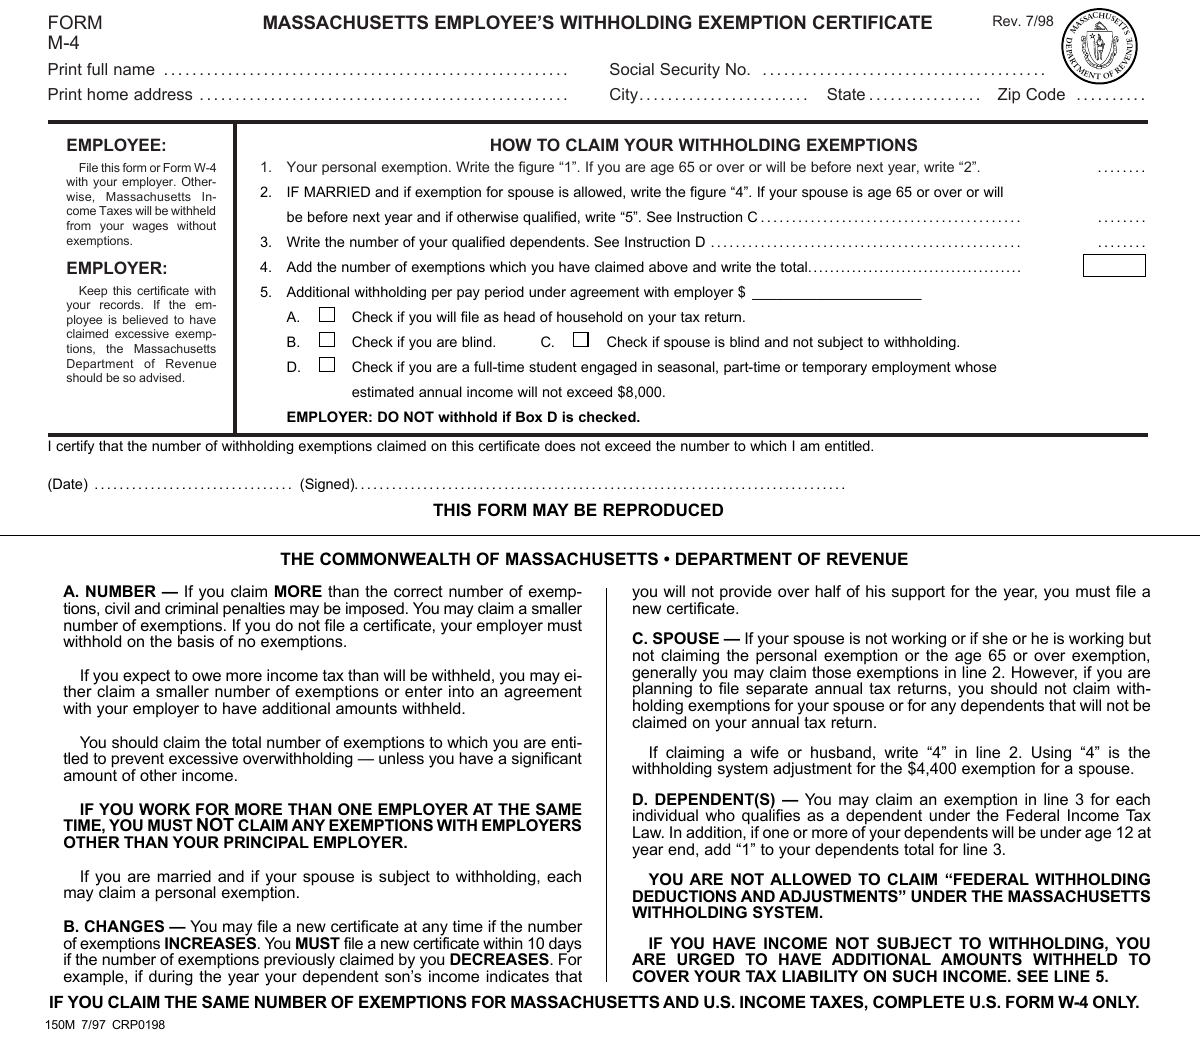 MASSACHUSETTS EMPLOYEE'S WITHHOLDING EXEMPTION CERTIFICATE FORM M-4